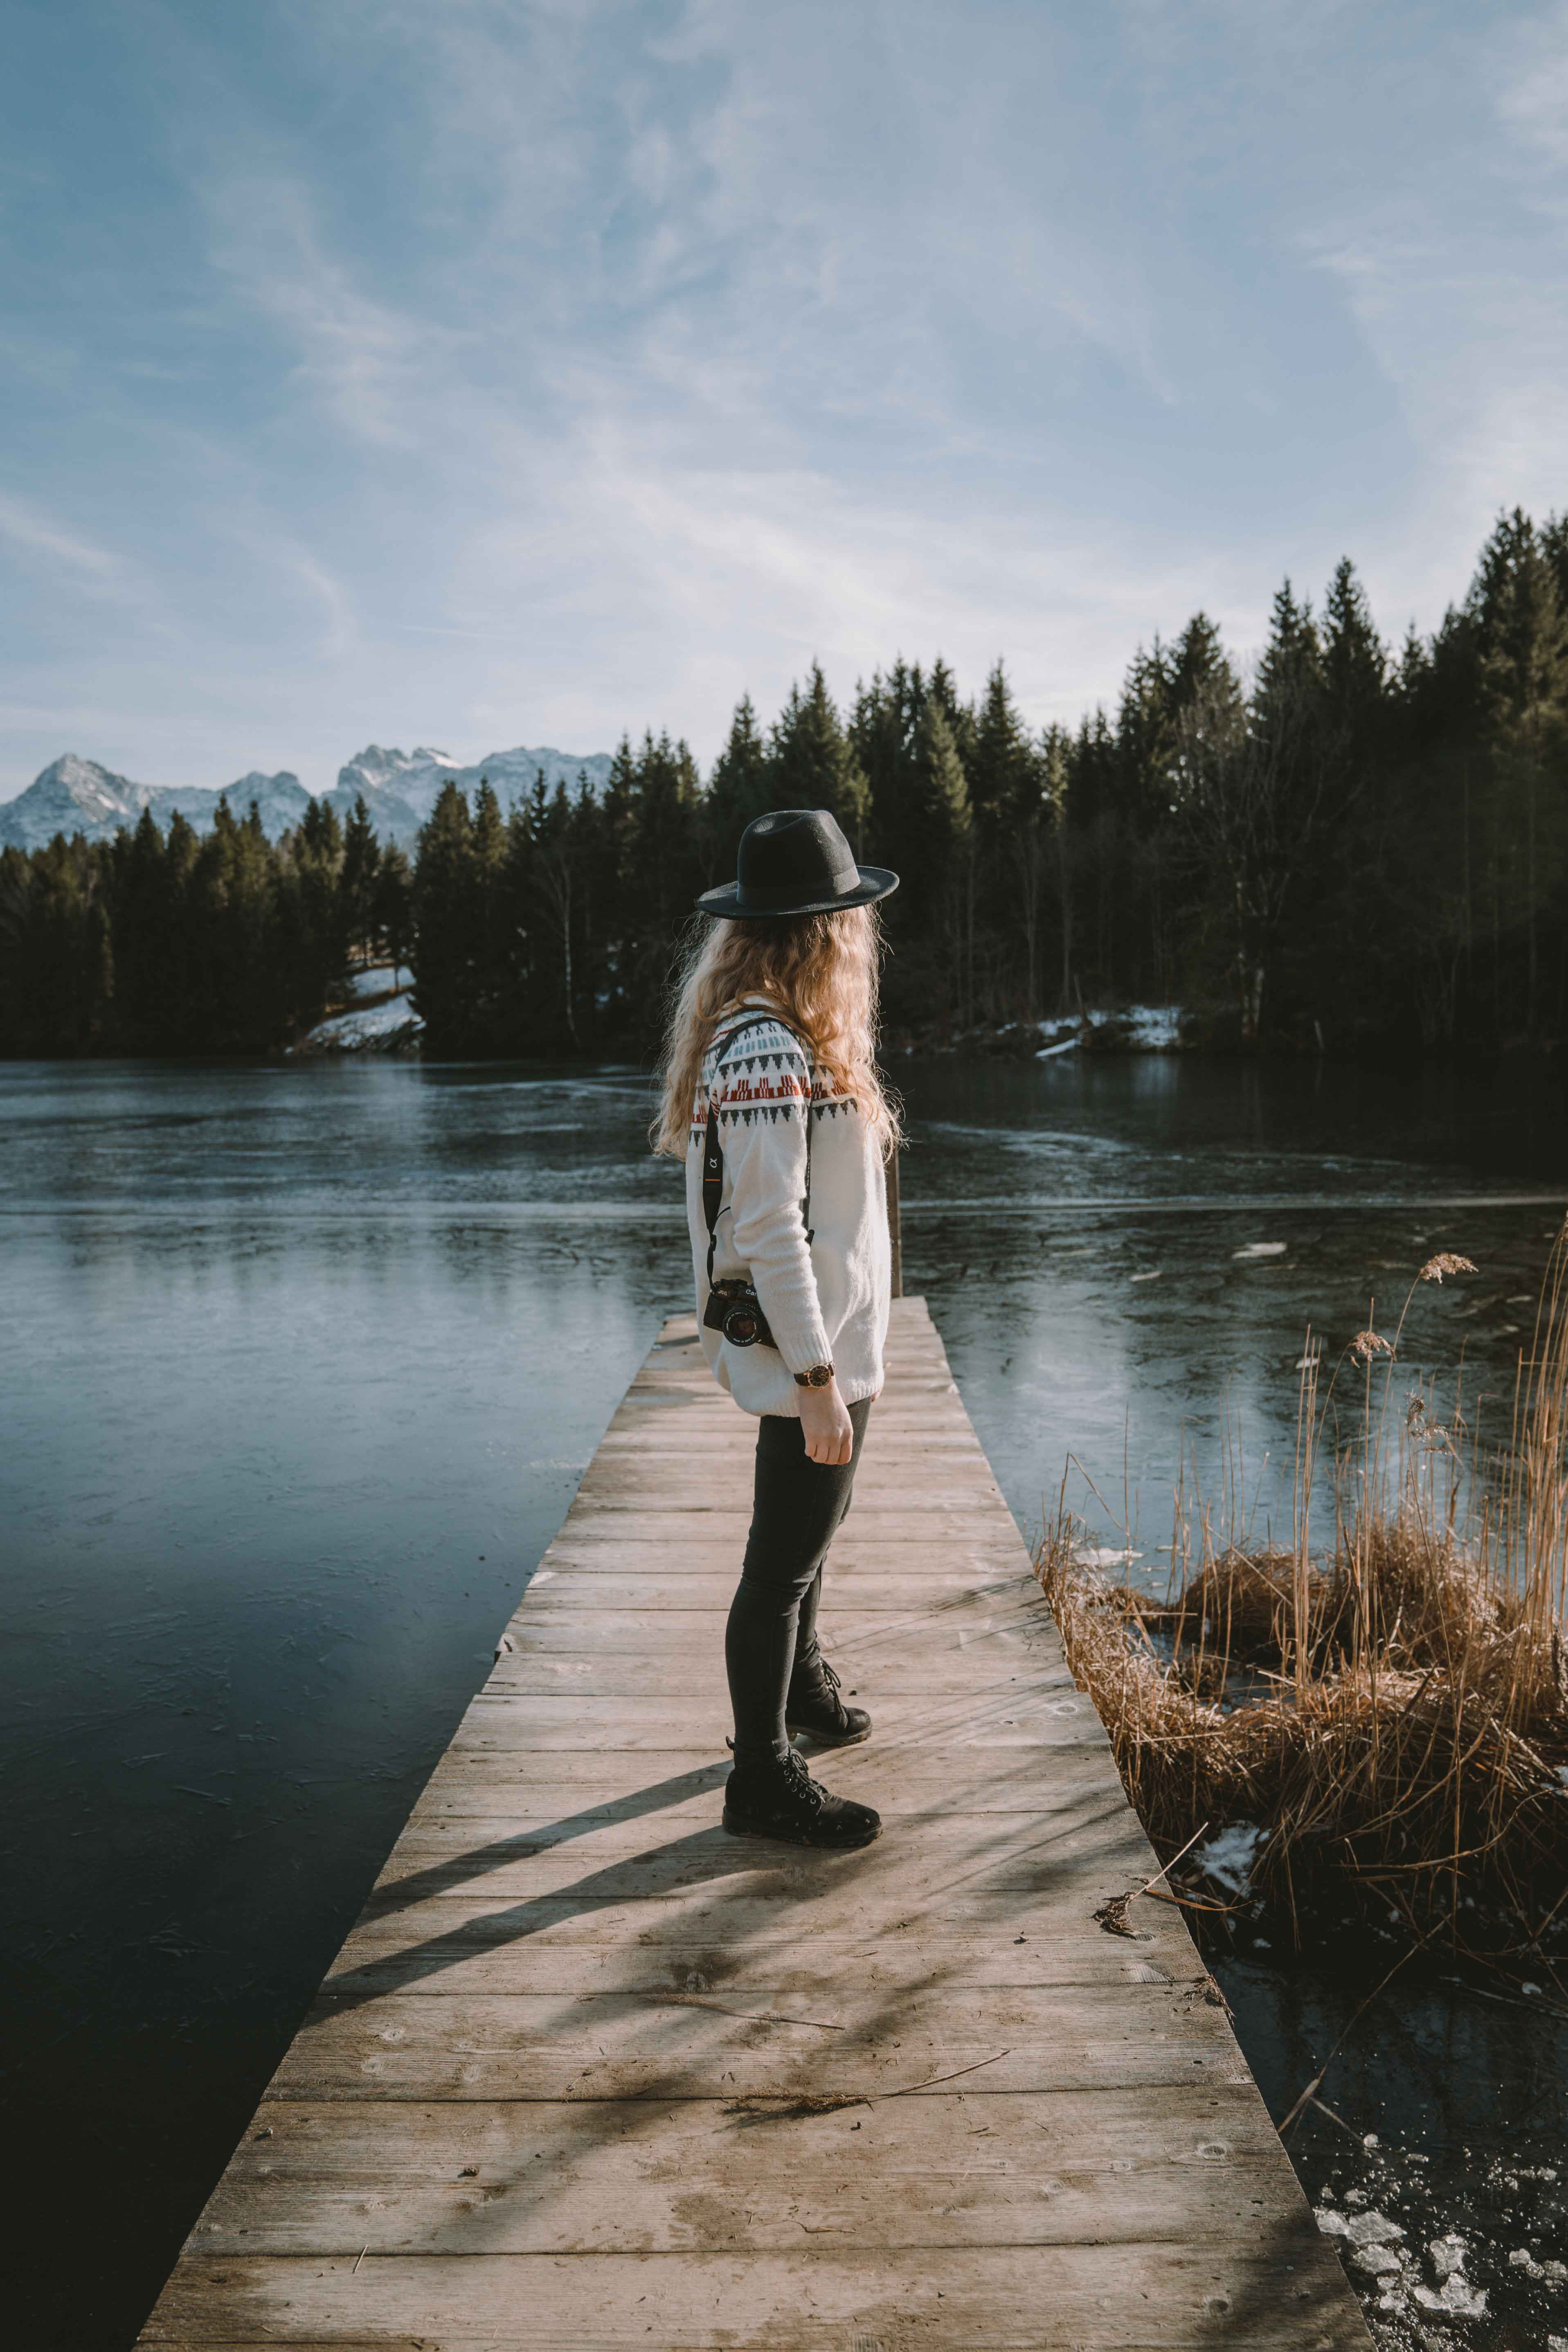 Girl standing on small pier at lake Gerold in Germany carrying a camera